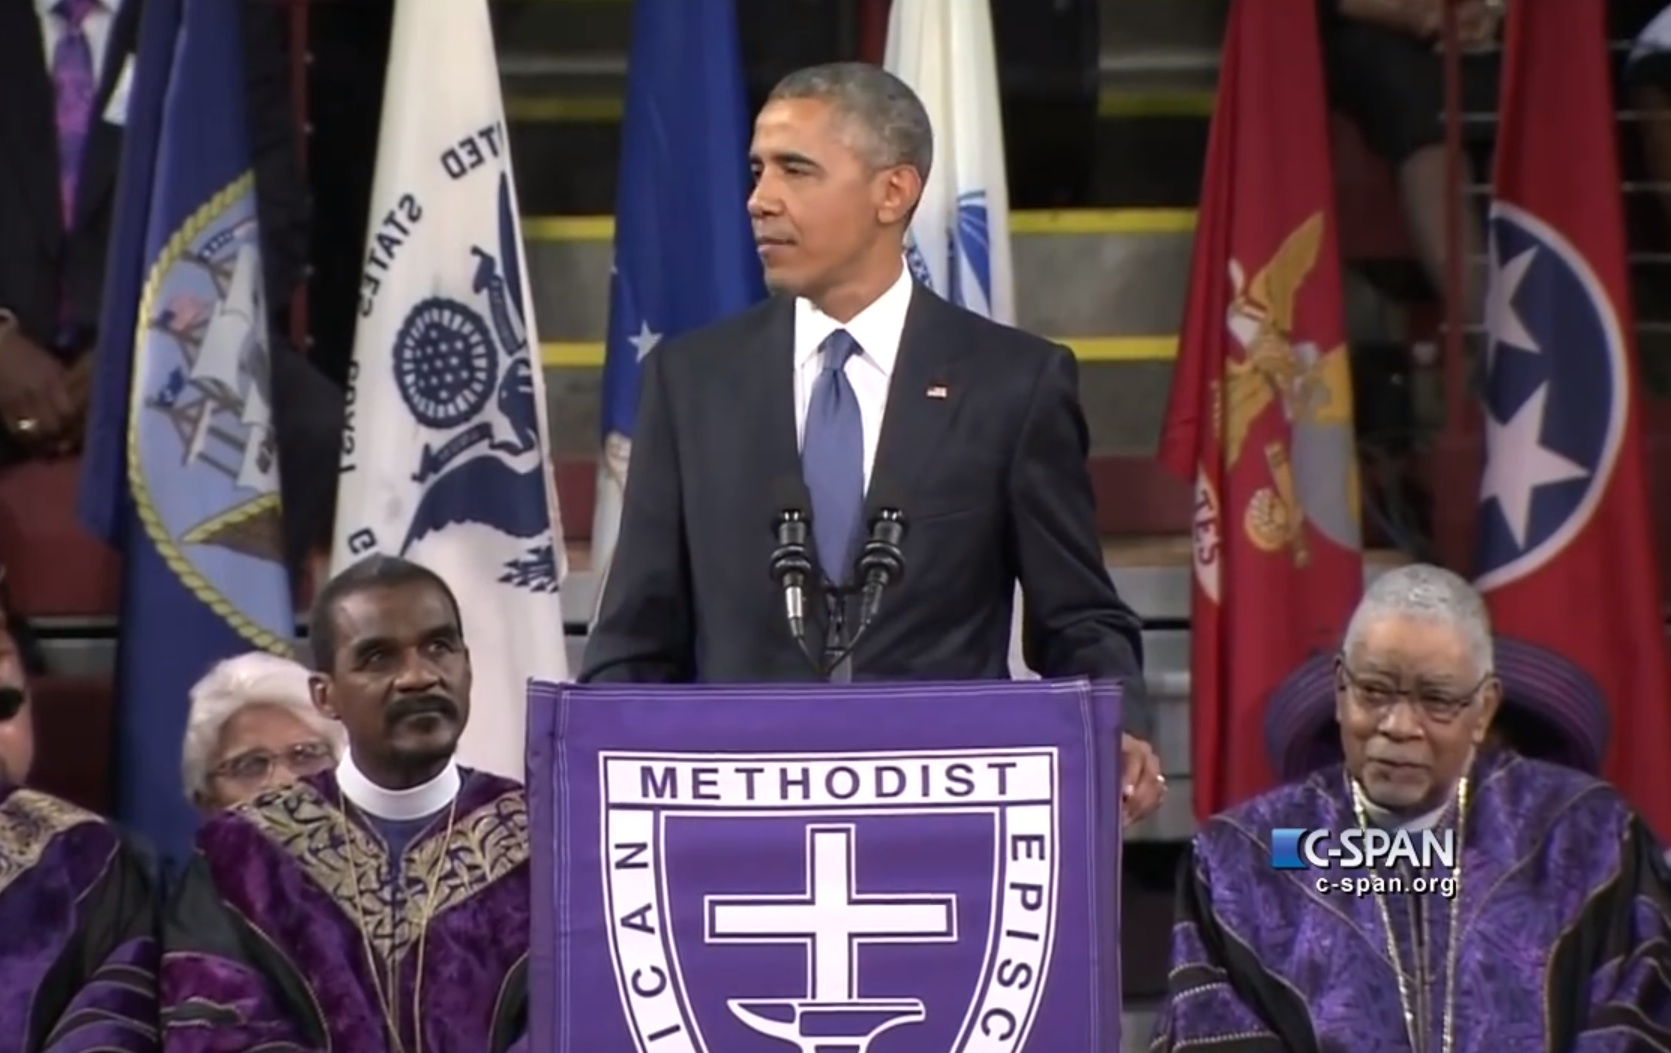 President Obama gave the eulogy for state Senator Clementa Pinckney, in perhaps the most stirring speech of his career.